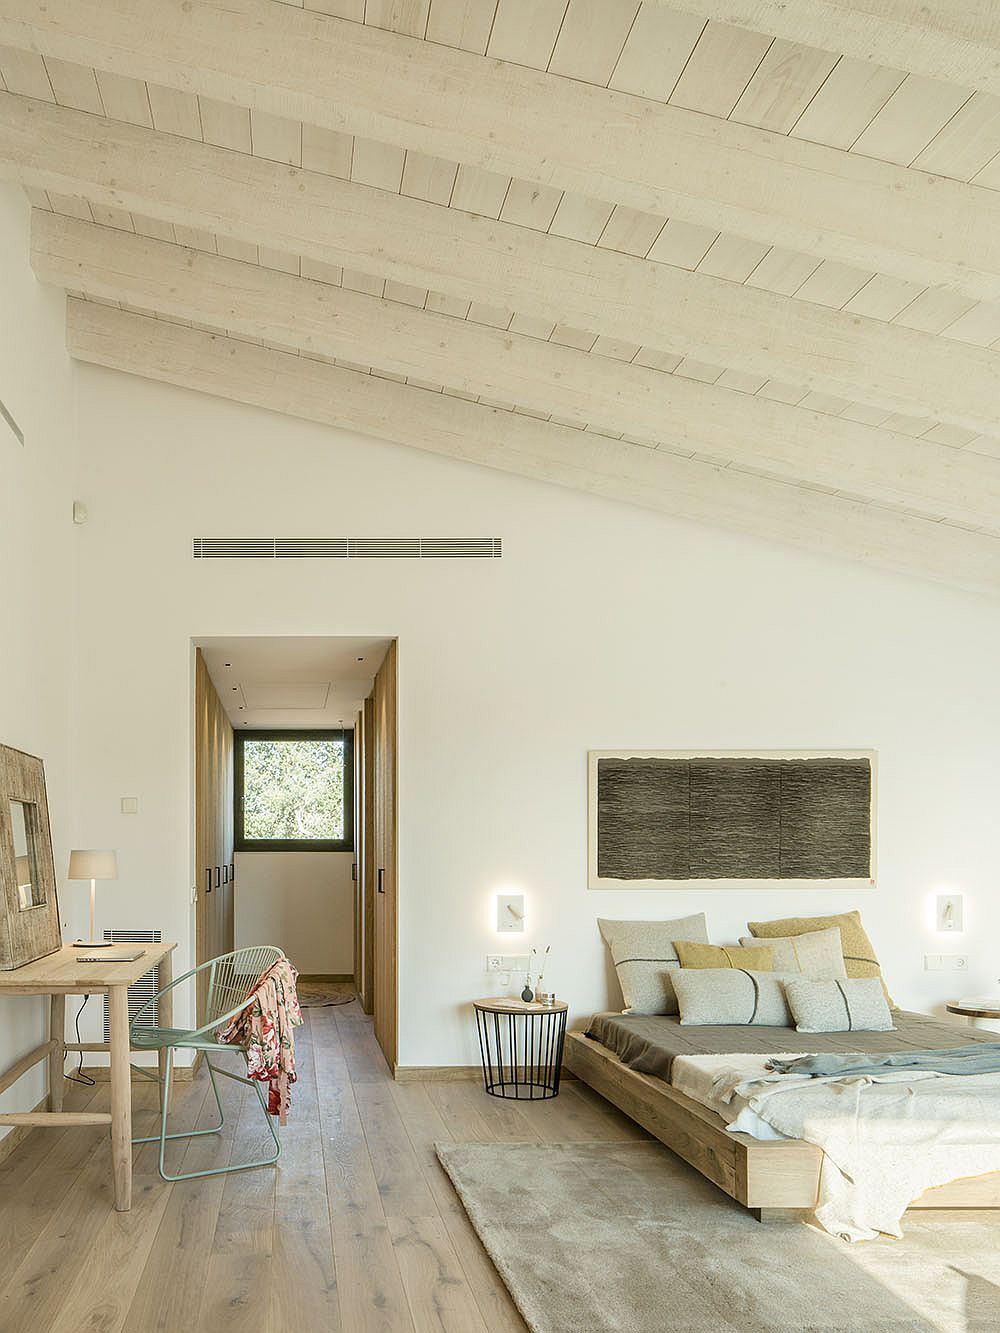 Relaxing master bedroom in white and wood inside modern Spanish home